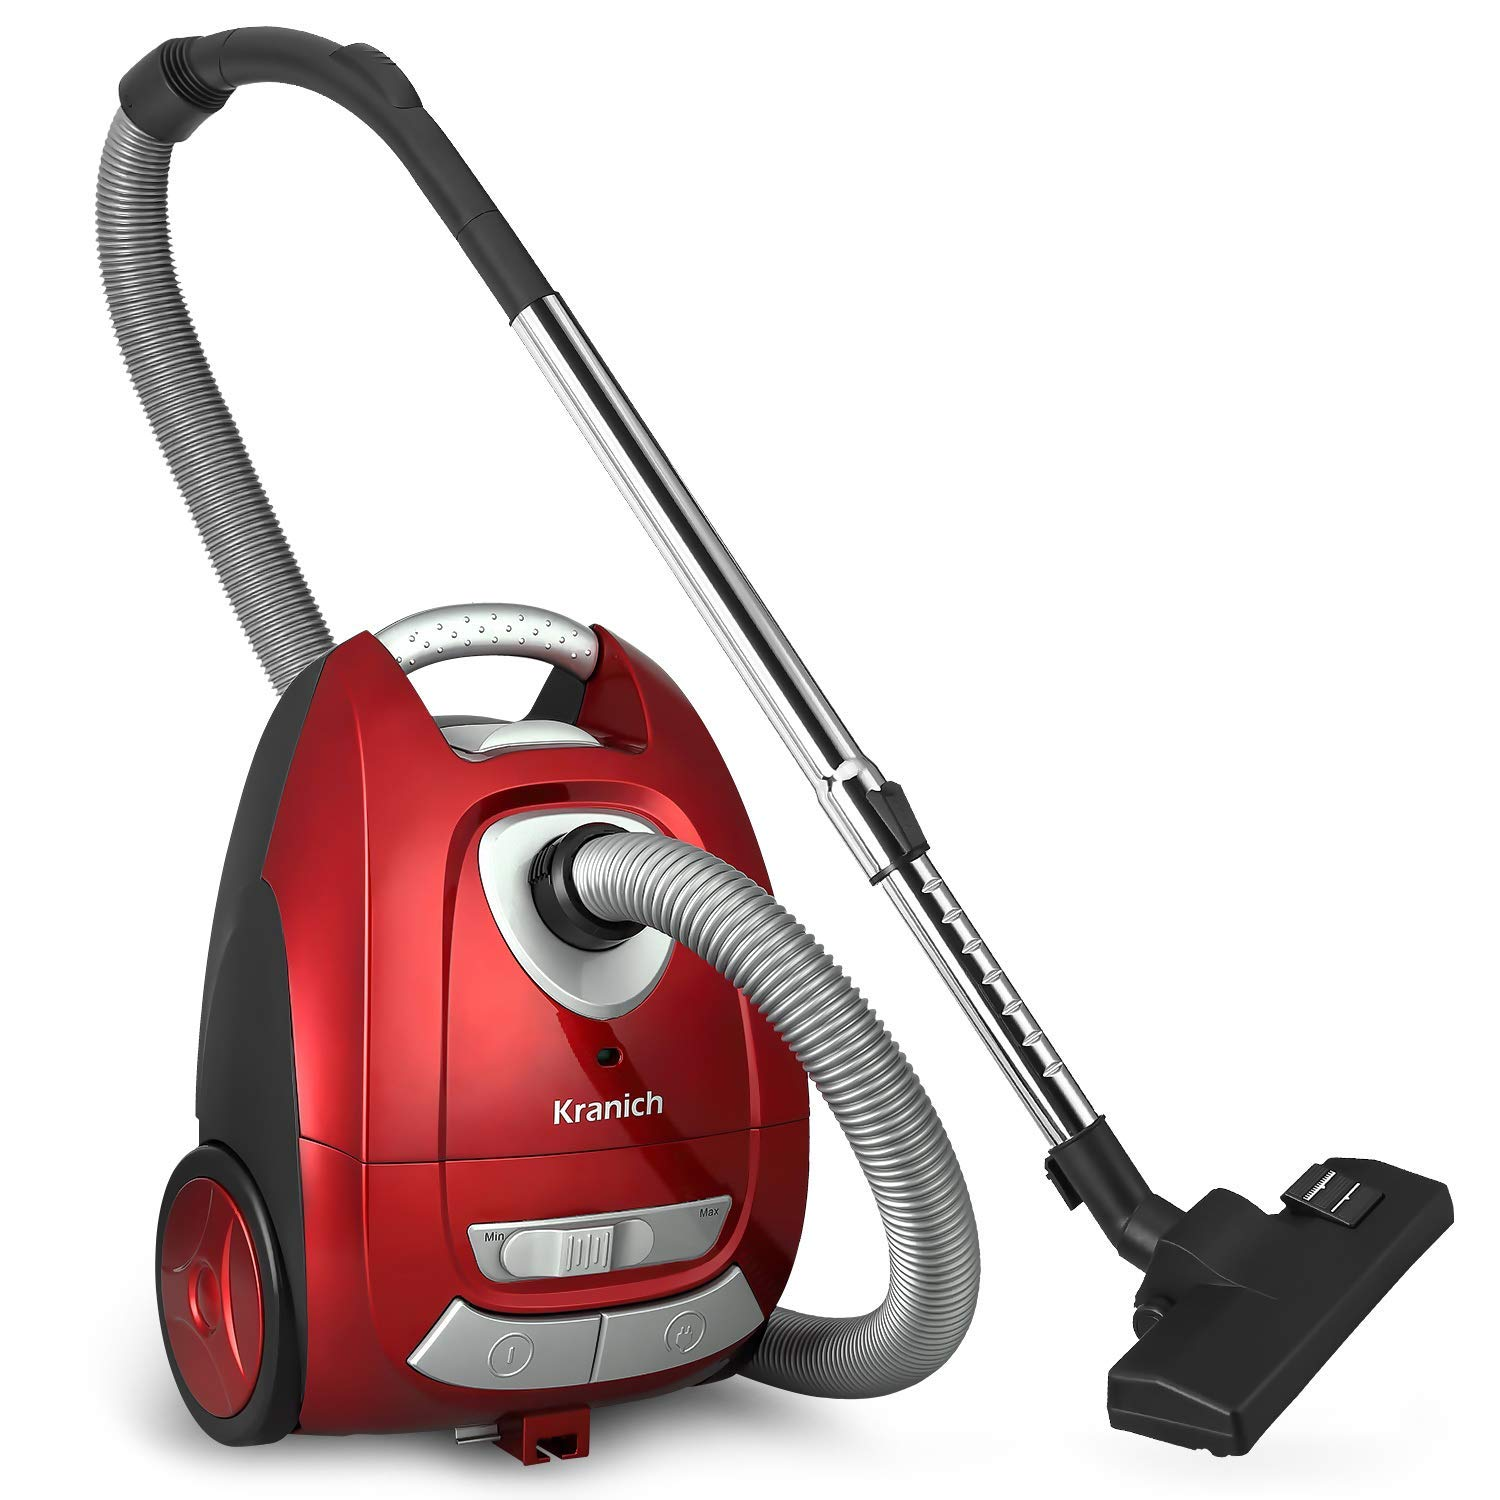 Kranich Cylinder Canister Vacuum Cleaner Corded Suction 1000W Combination Rug and Floor Tool